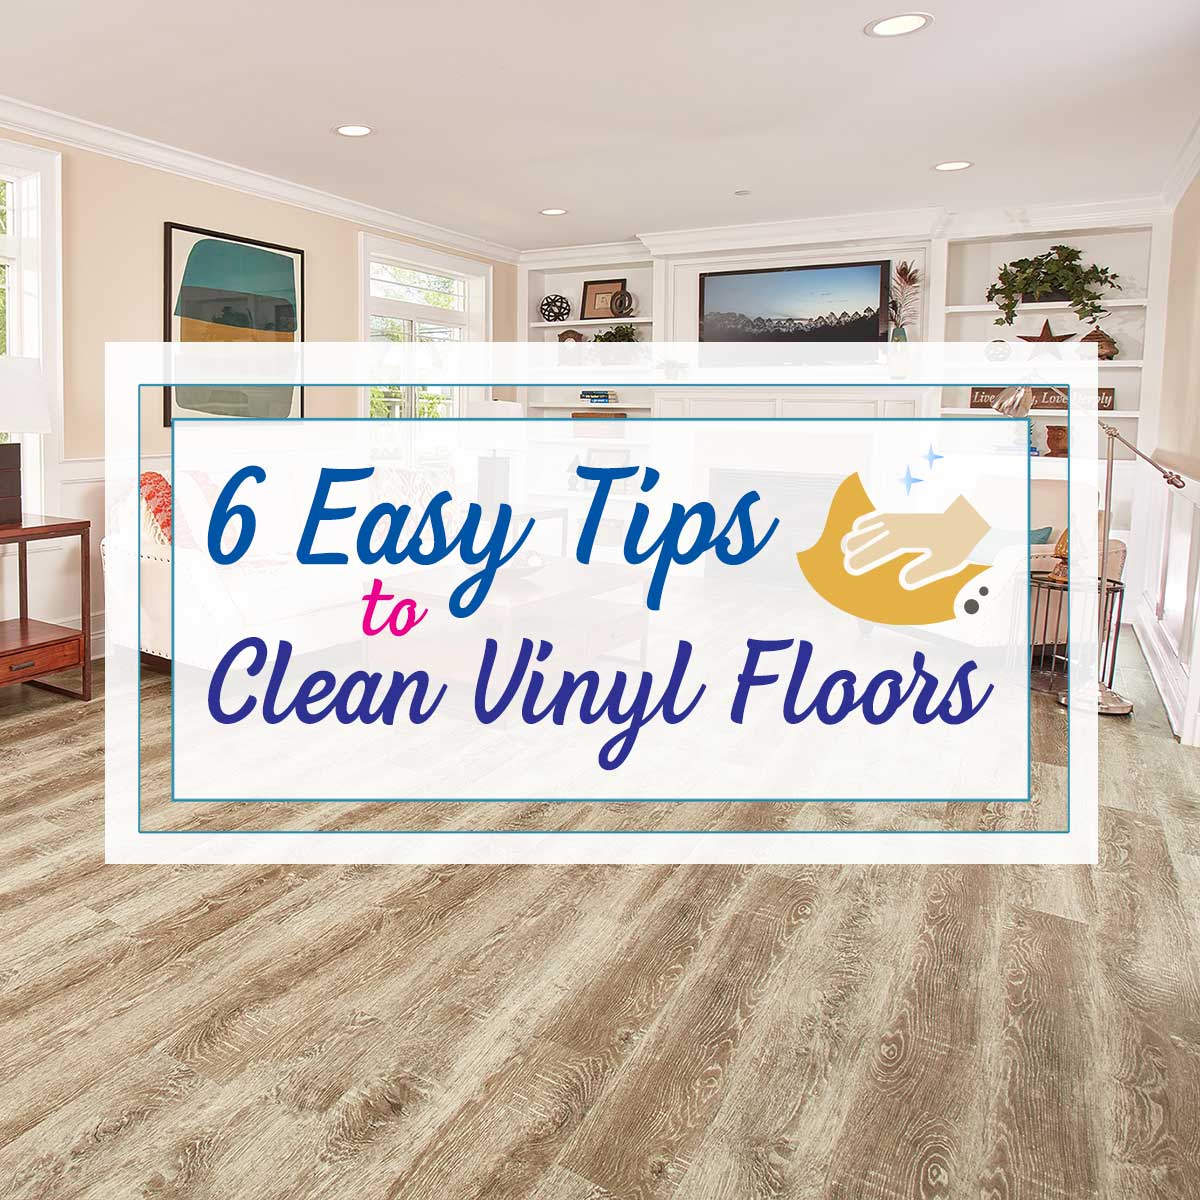 6 Easy Tips to Clean Vinyl Floors